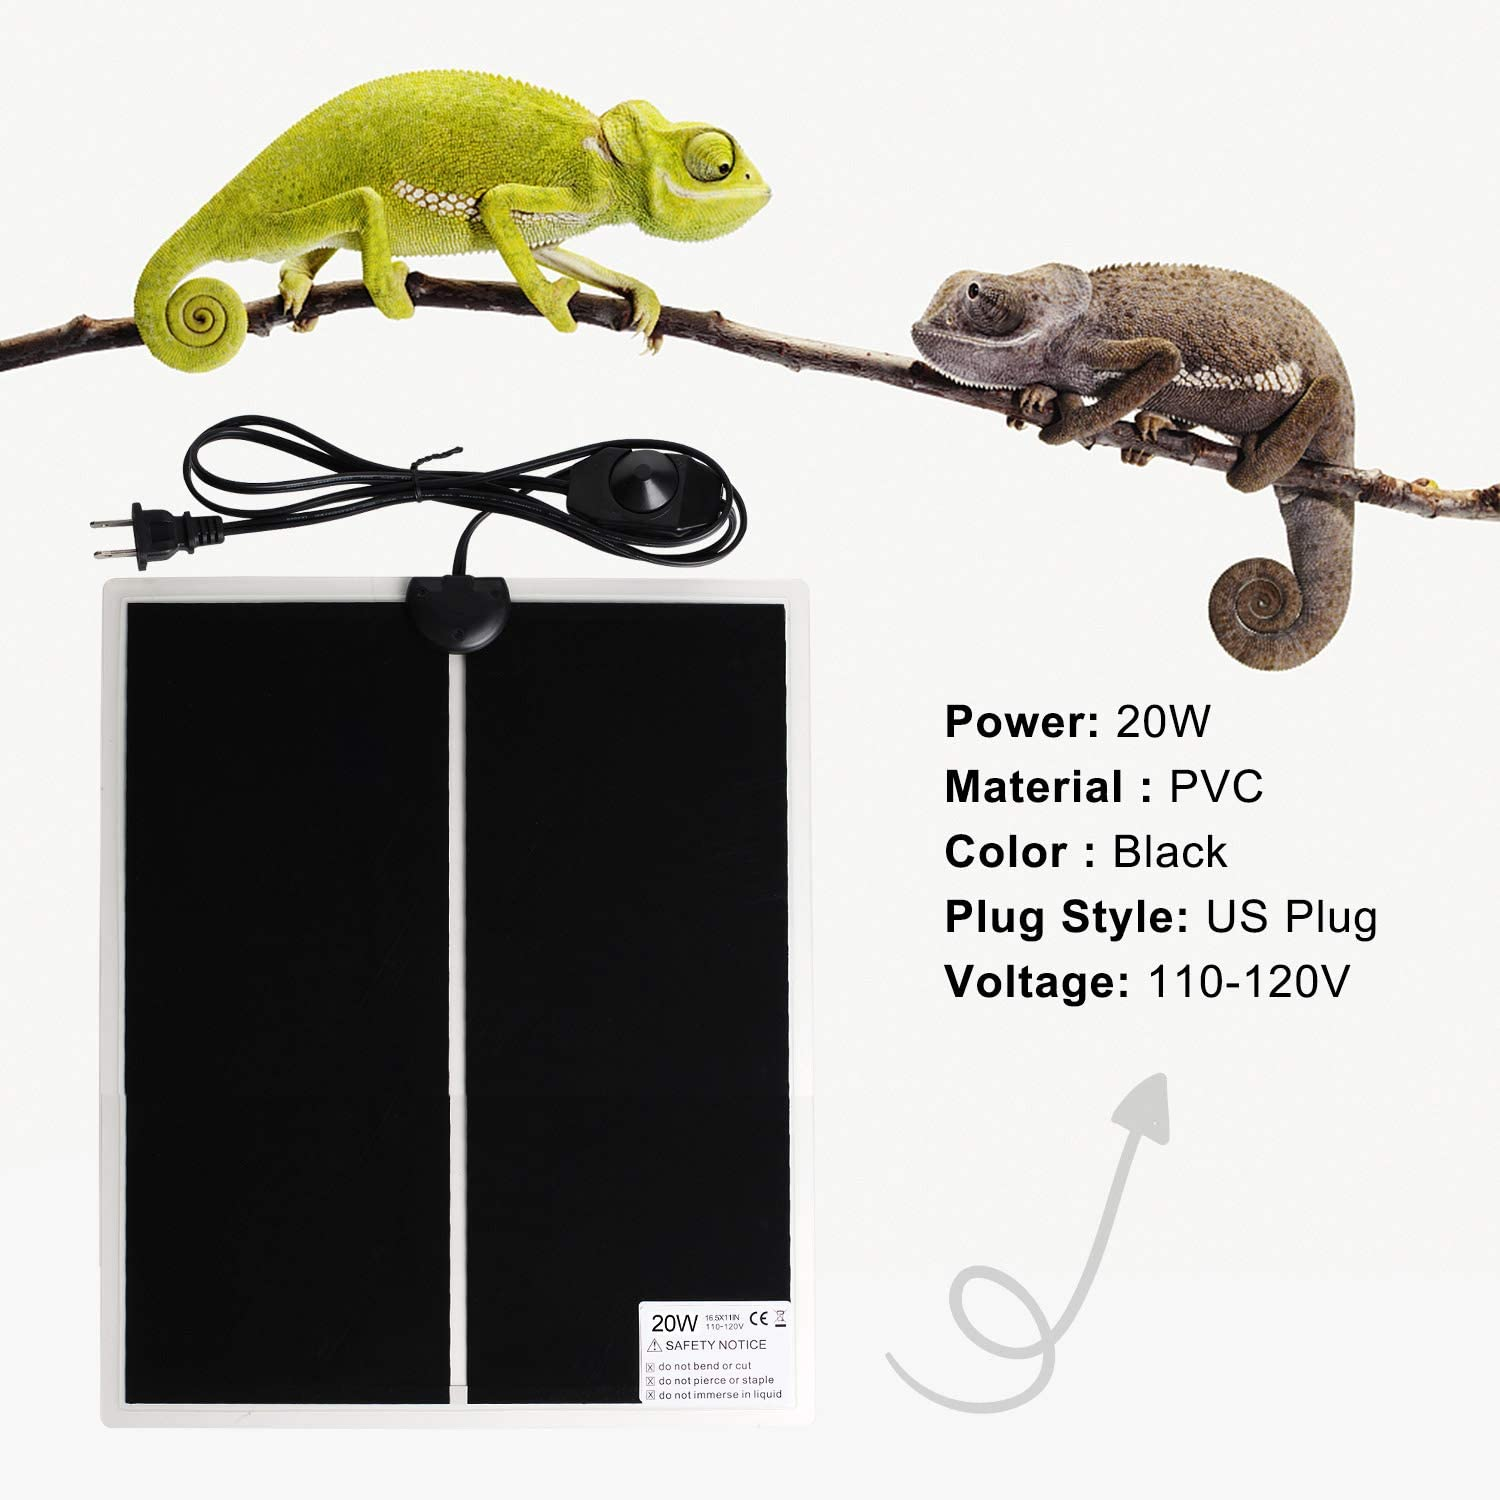 FIVEAGE 20W 16.5 Inch x 11 Inch Reptile Heating Pad Warmer with Temperature Controller Power Adjustment Under Tank Terrarium Heater Heat Mat for Pets Small Animals,2 Pack